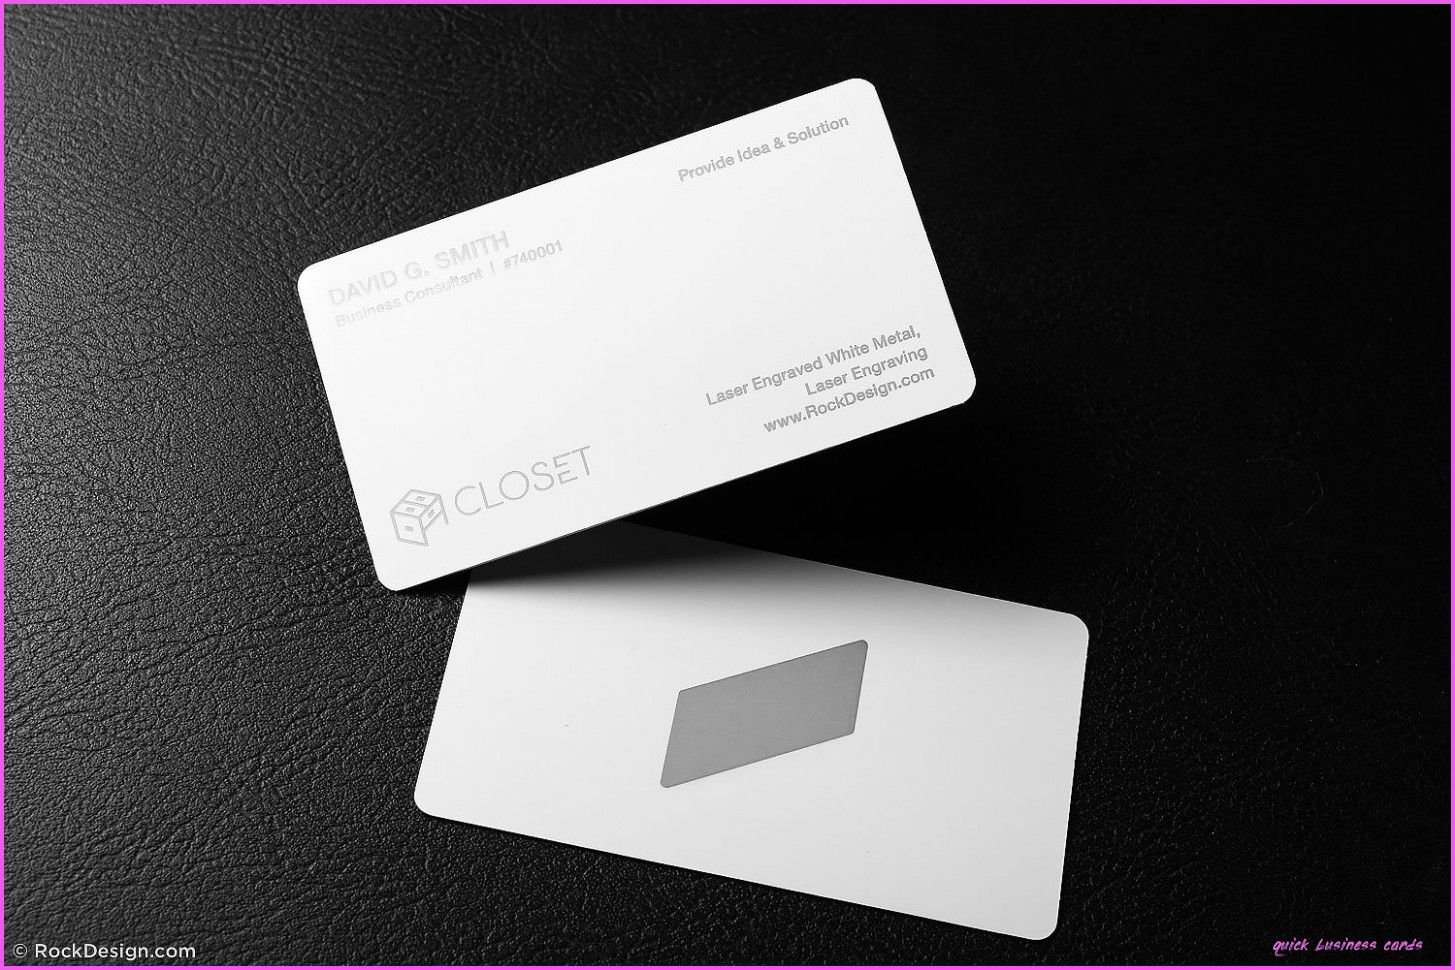 8 Things To Expect When Attending Quick Business Cards Quick Business Cards Https Busines Quick Business Cards Printing Business Cards Metal Business Cards